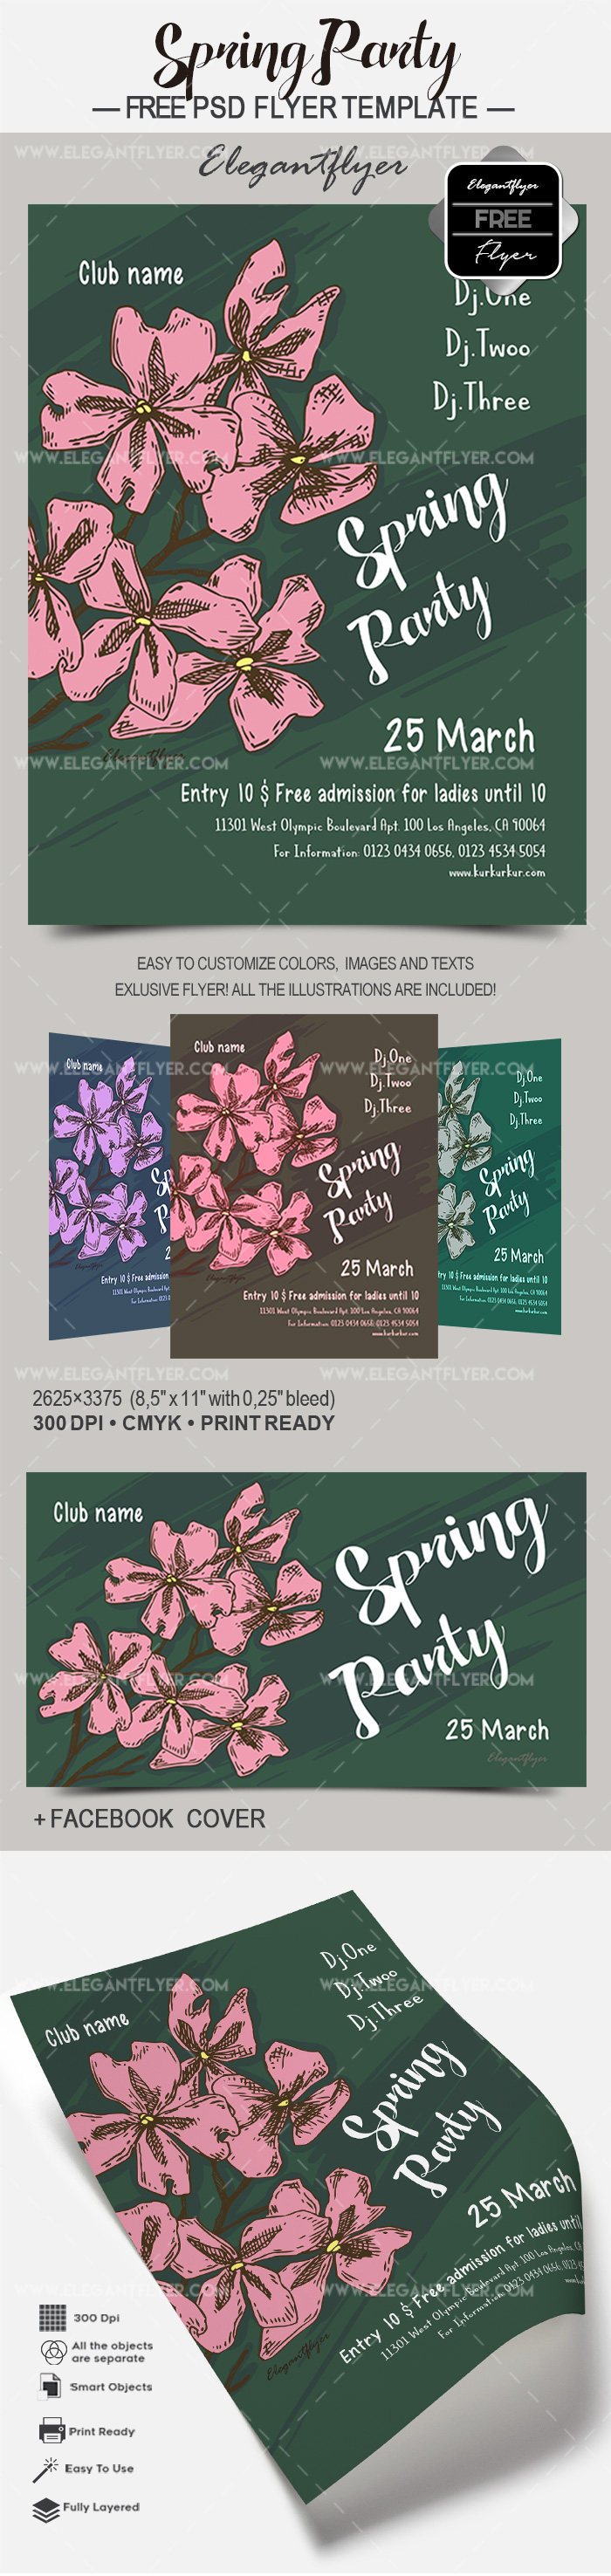 Spring Party – Free Flyer PSD Template